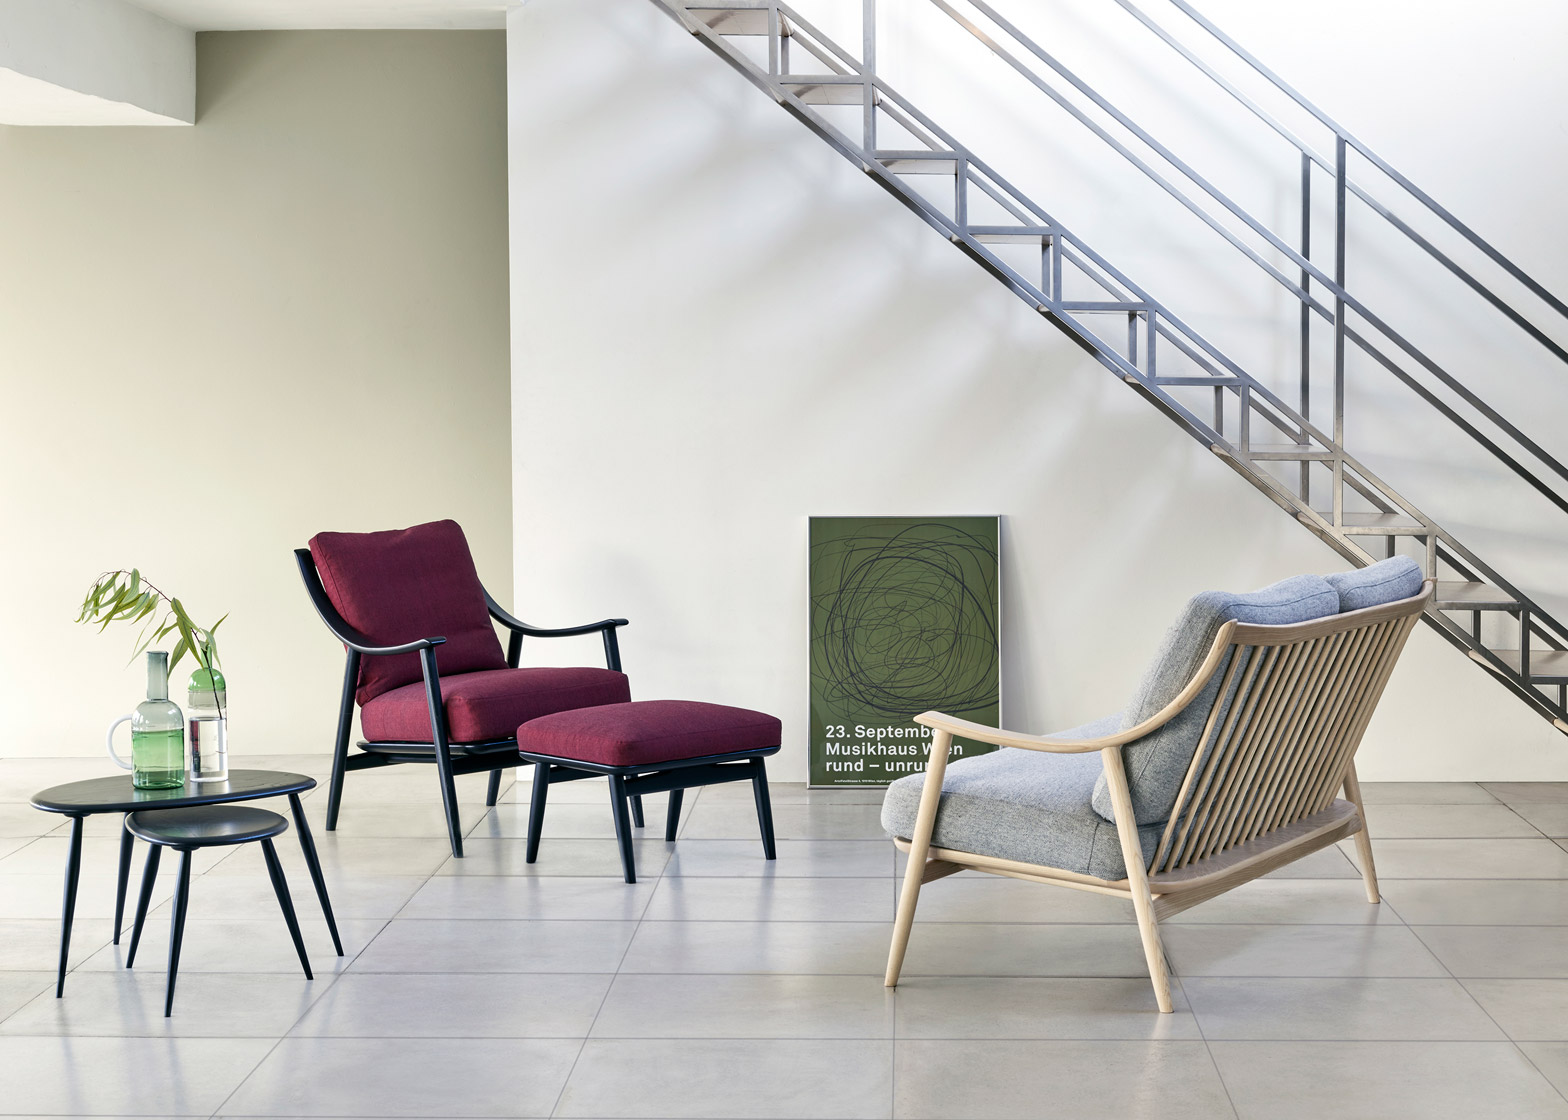 Ercol furniture launching at Milan design week 2016